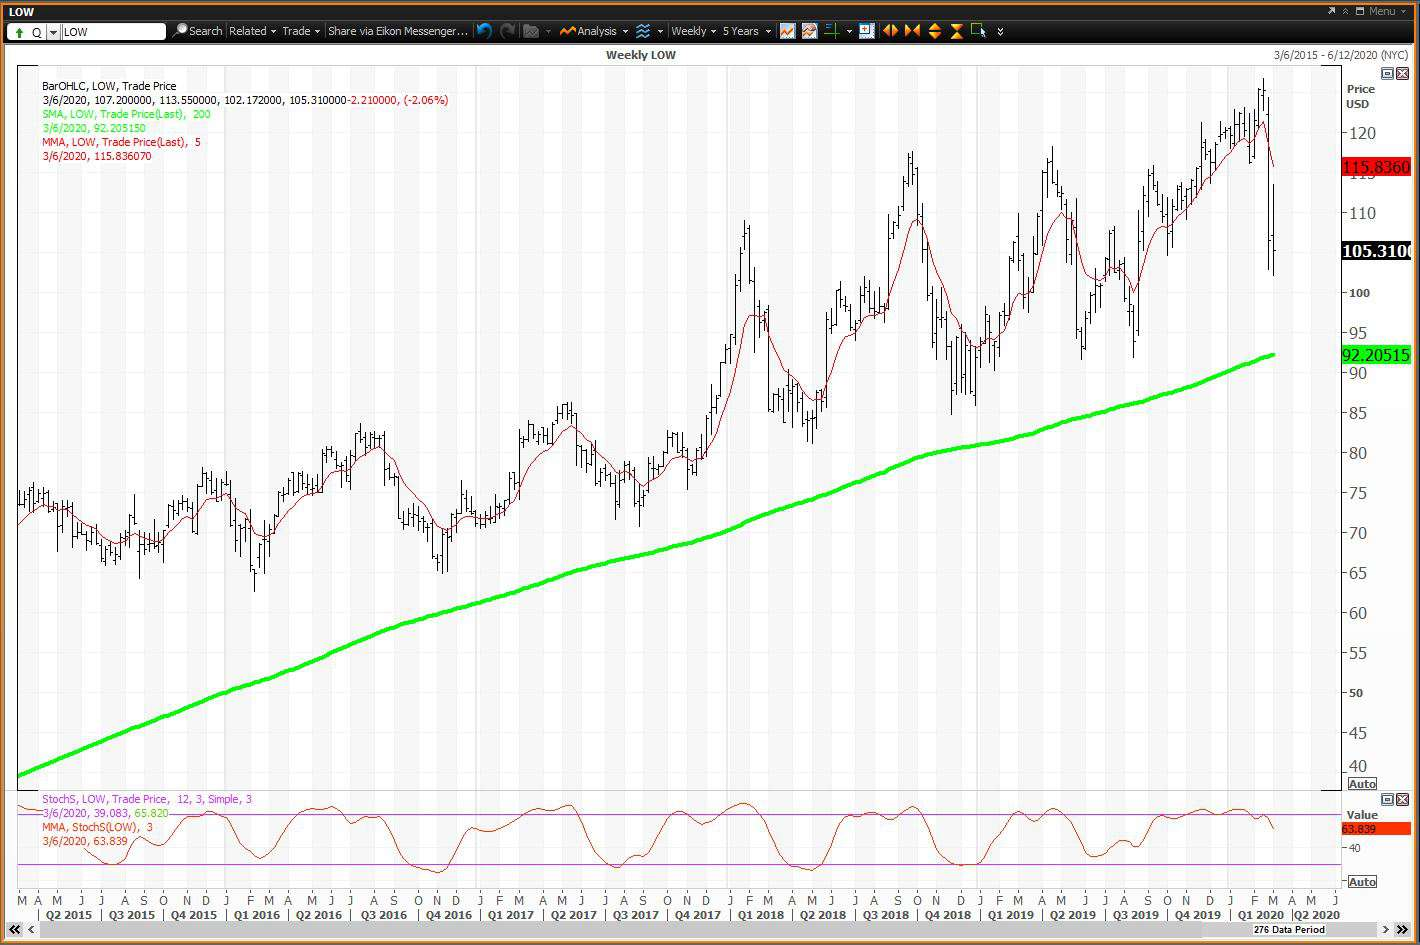 Weekly chart showing the share price performance of Lowe's Companies, Inc. (LOW)